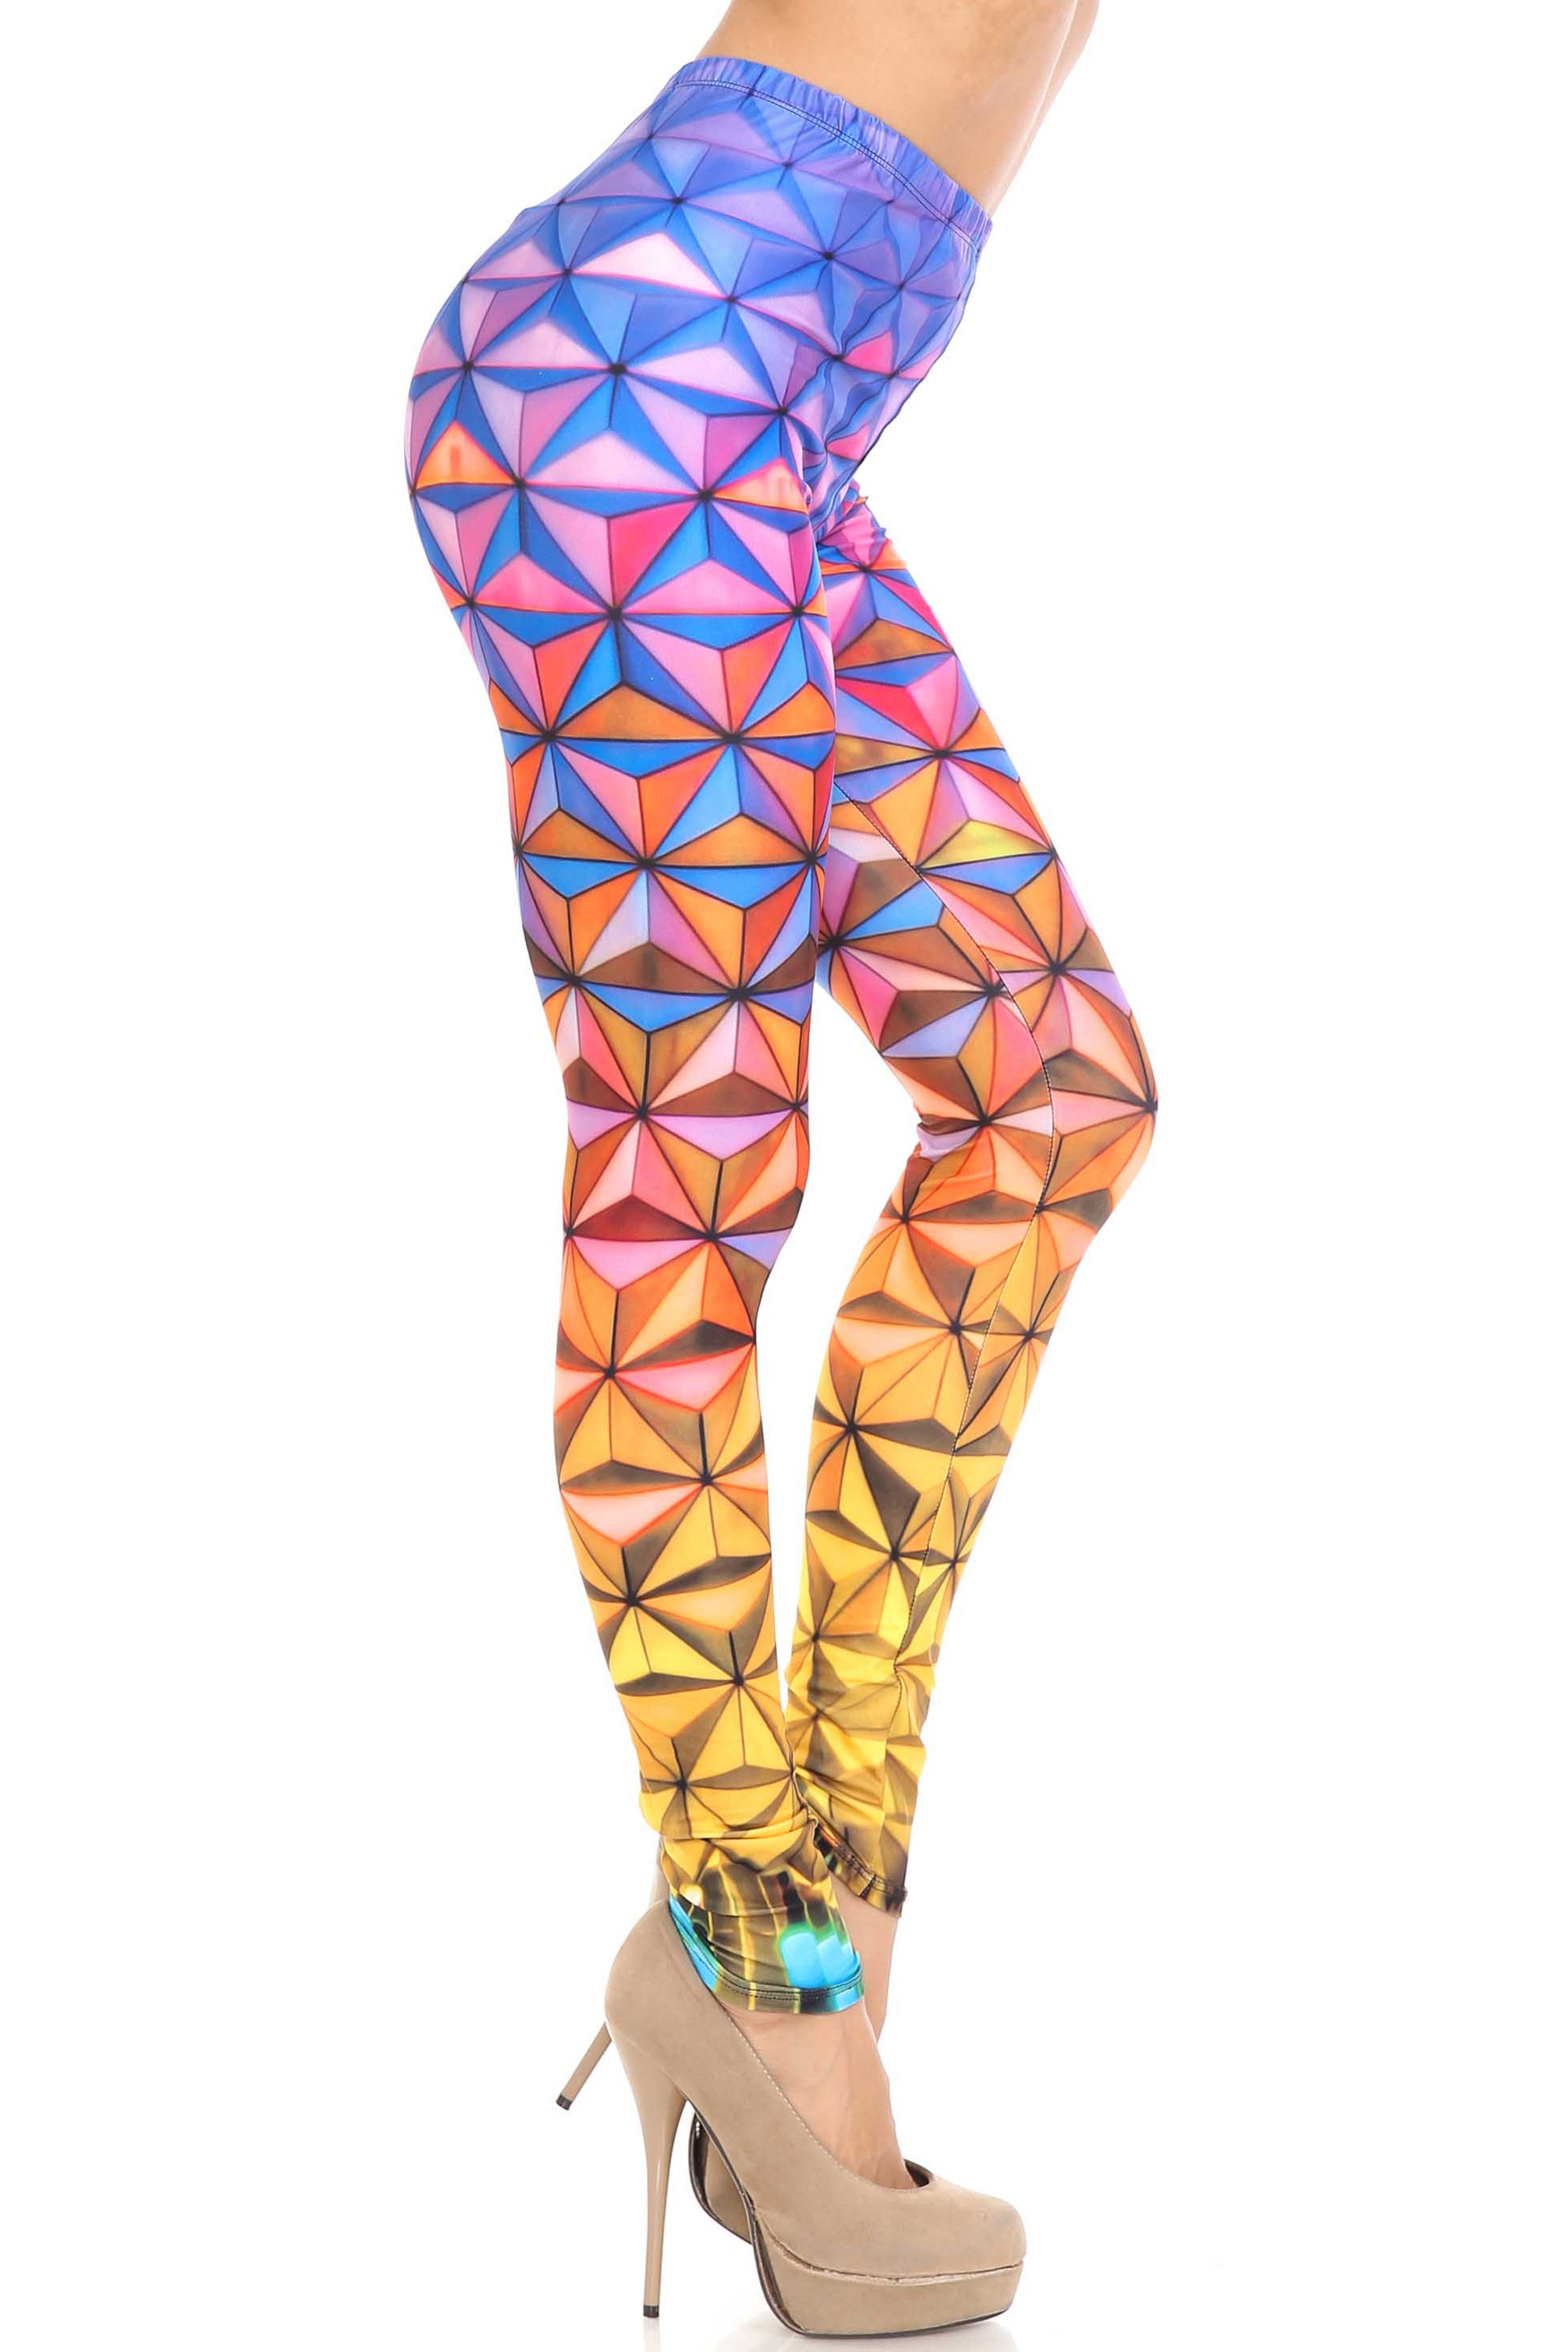 Creamy Soft Ombre Epcot Plus Size Leggings - USA Fashion™